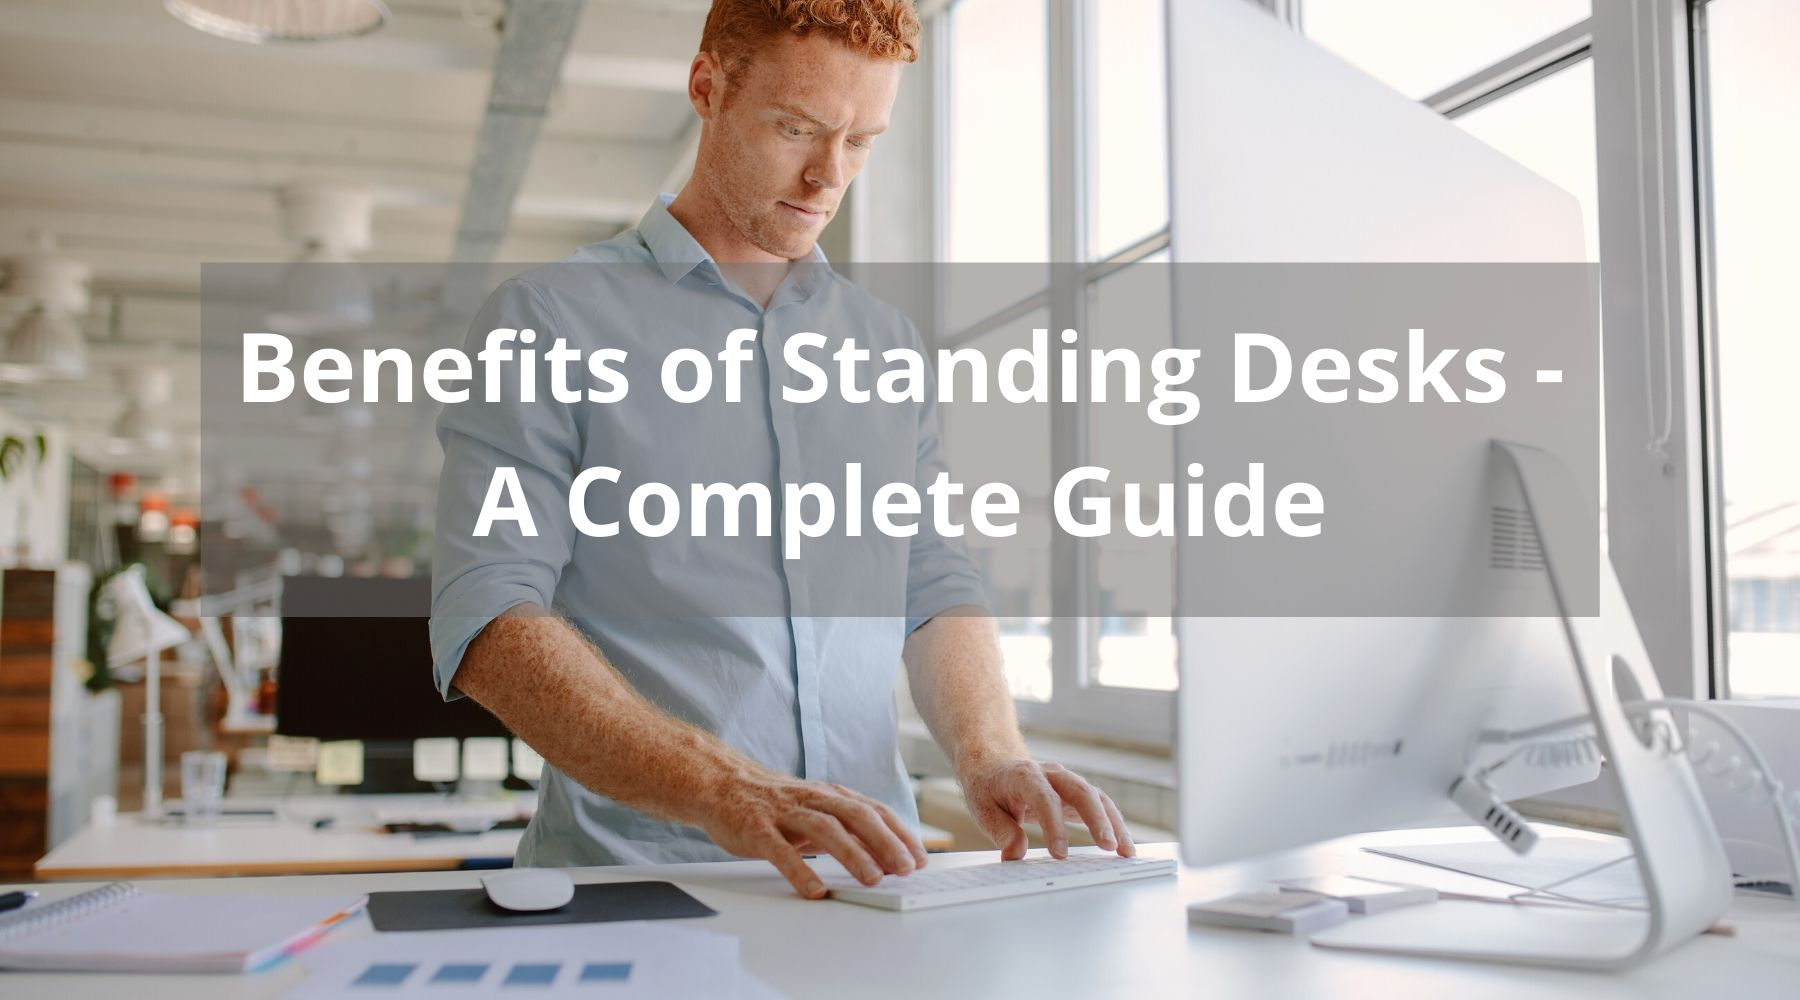 benefits of standing desks - a complete guide